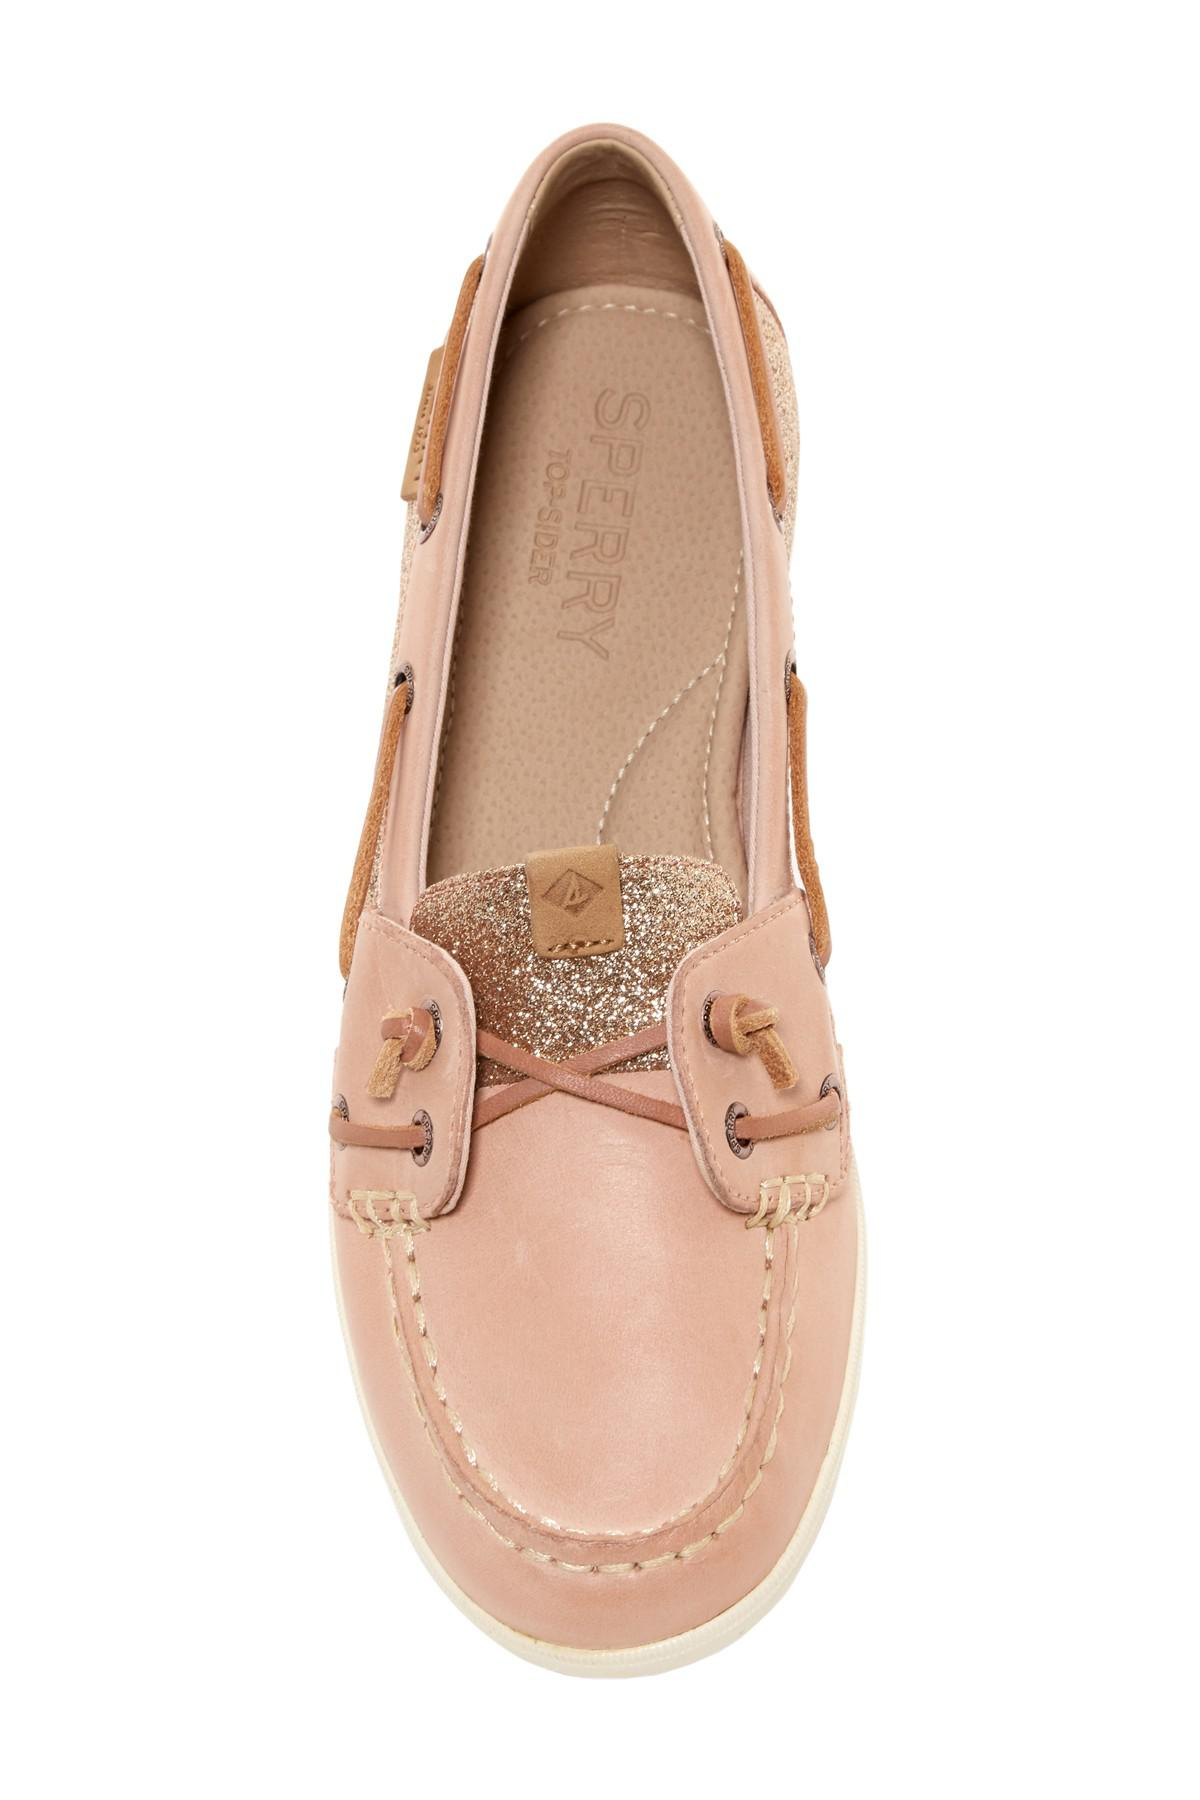 073c91534d74 Sperry Top-Sider Coil Ivy Glitter Boat Shoe in Pink - Lyst